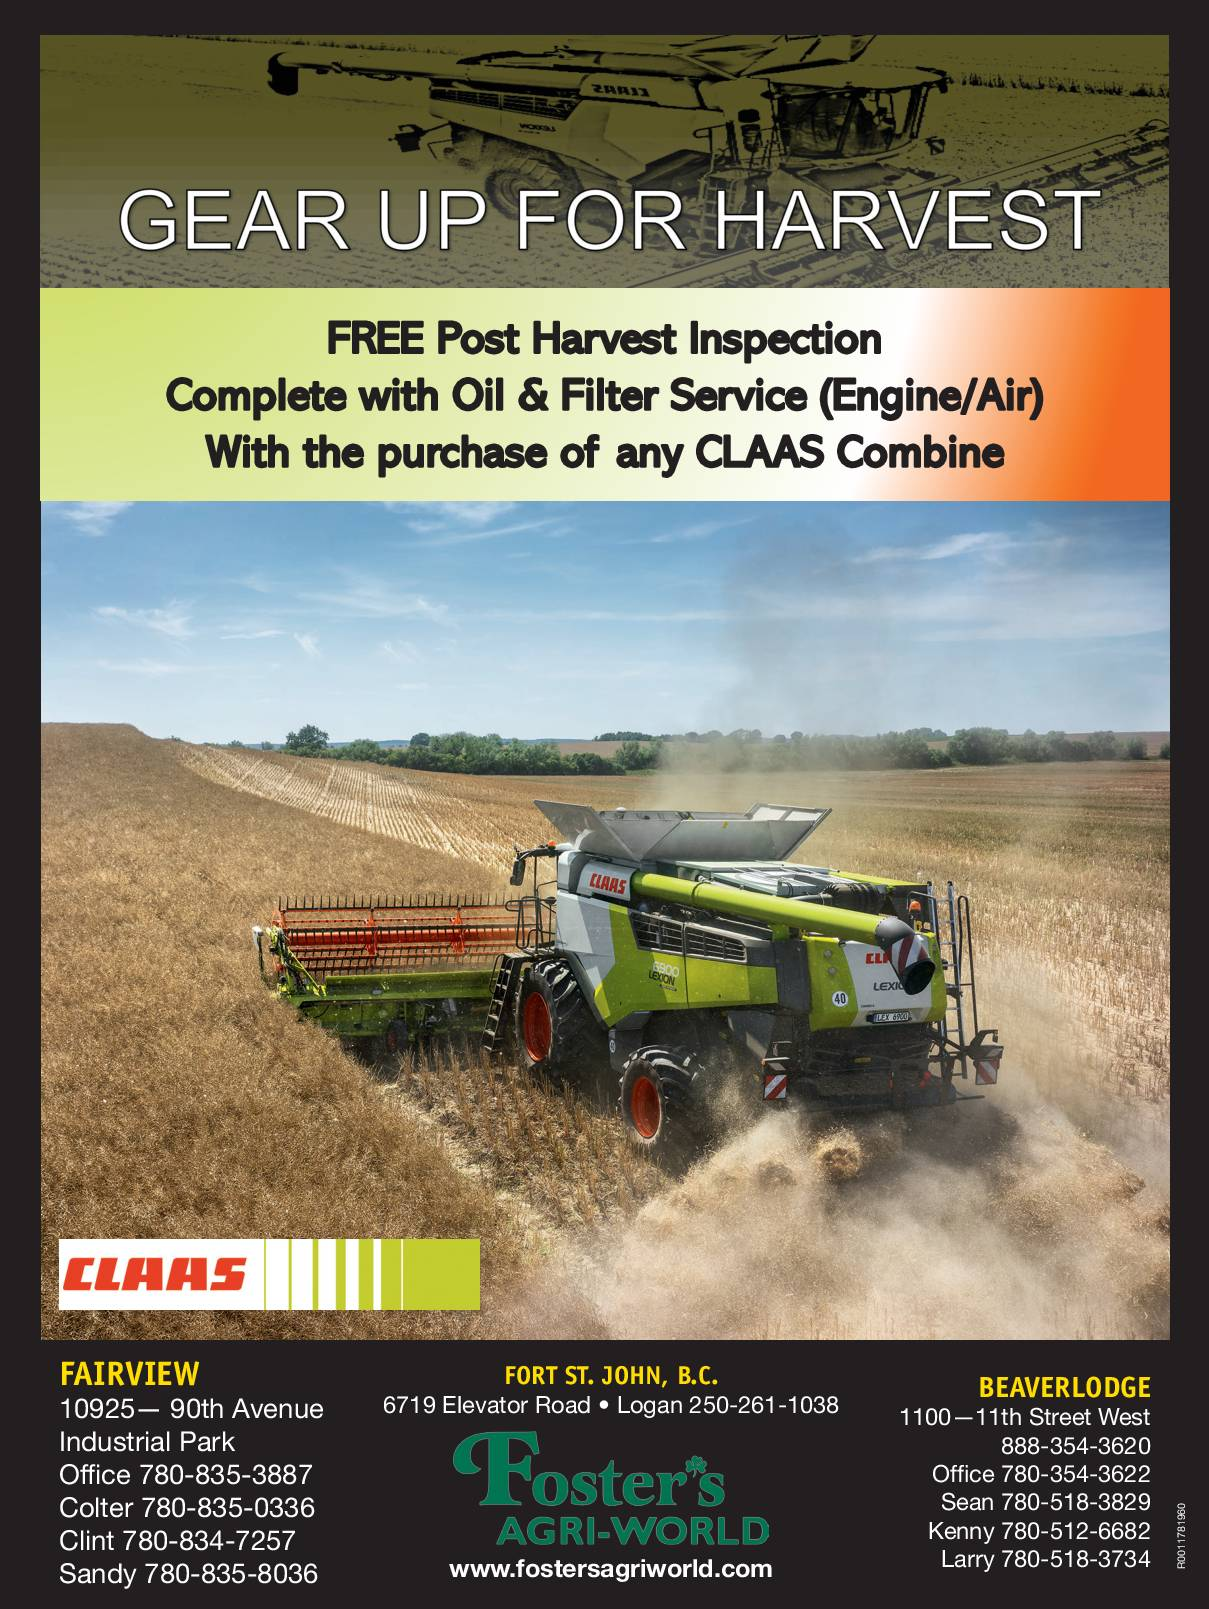 Gear up for Harvest!